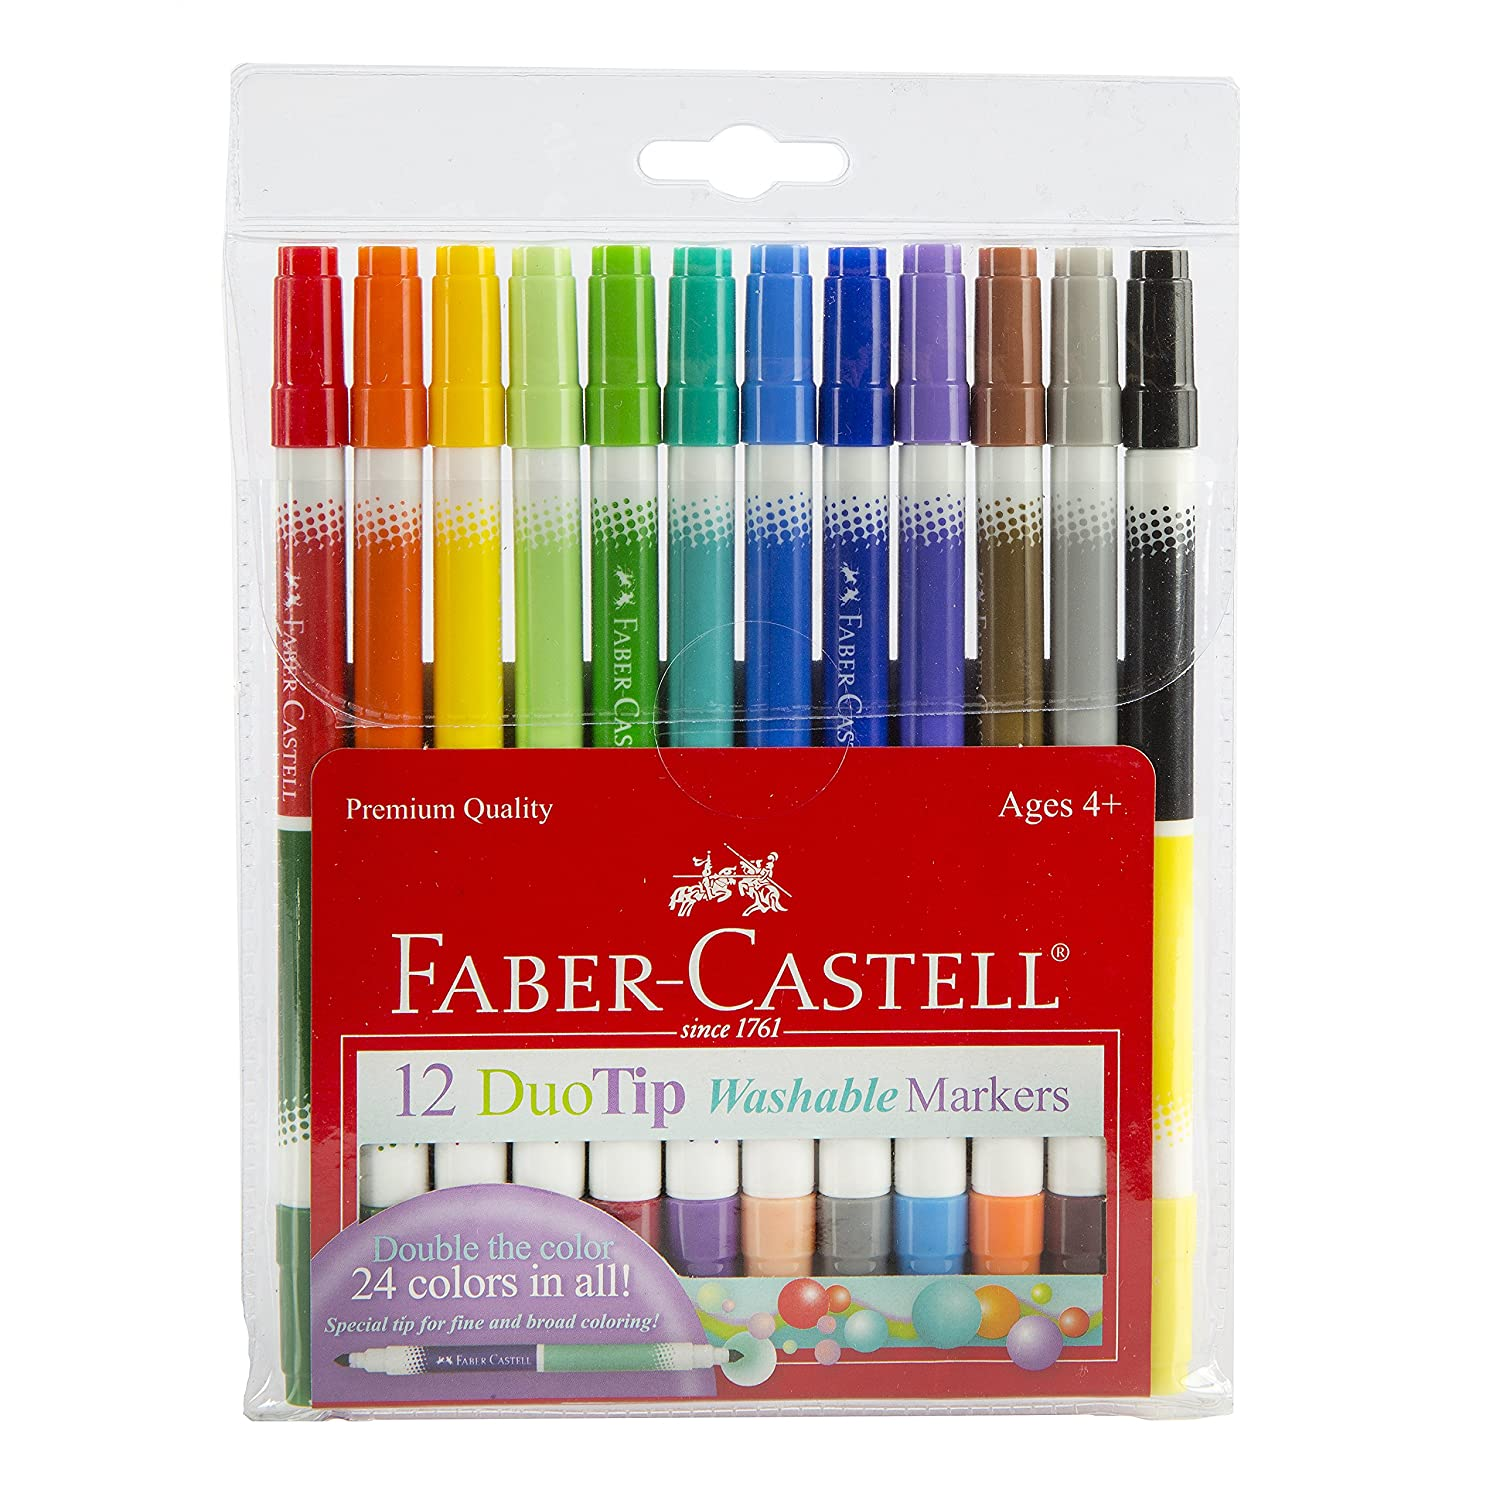 Faber-Castell DuoTip Washable Markers - 24 Markers, 48 Colors Faber and Castell 153024